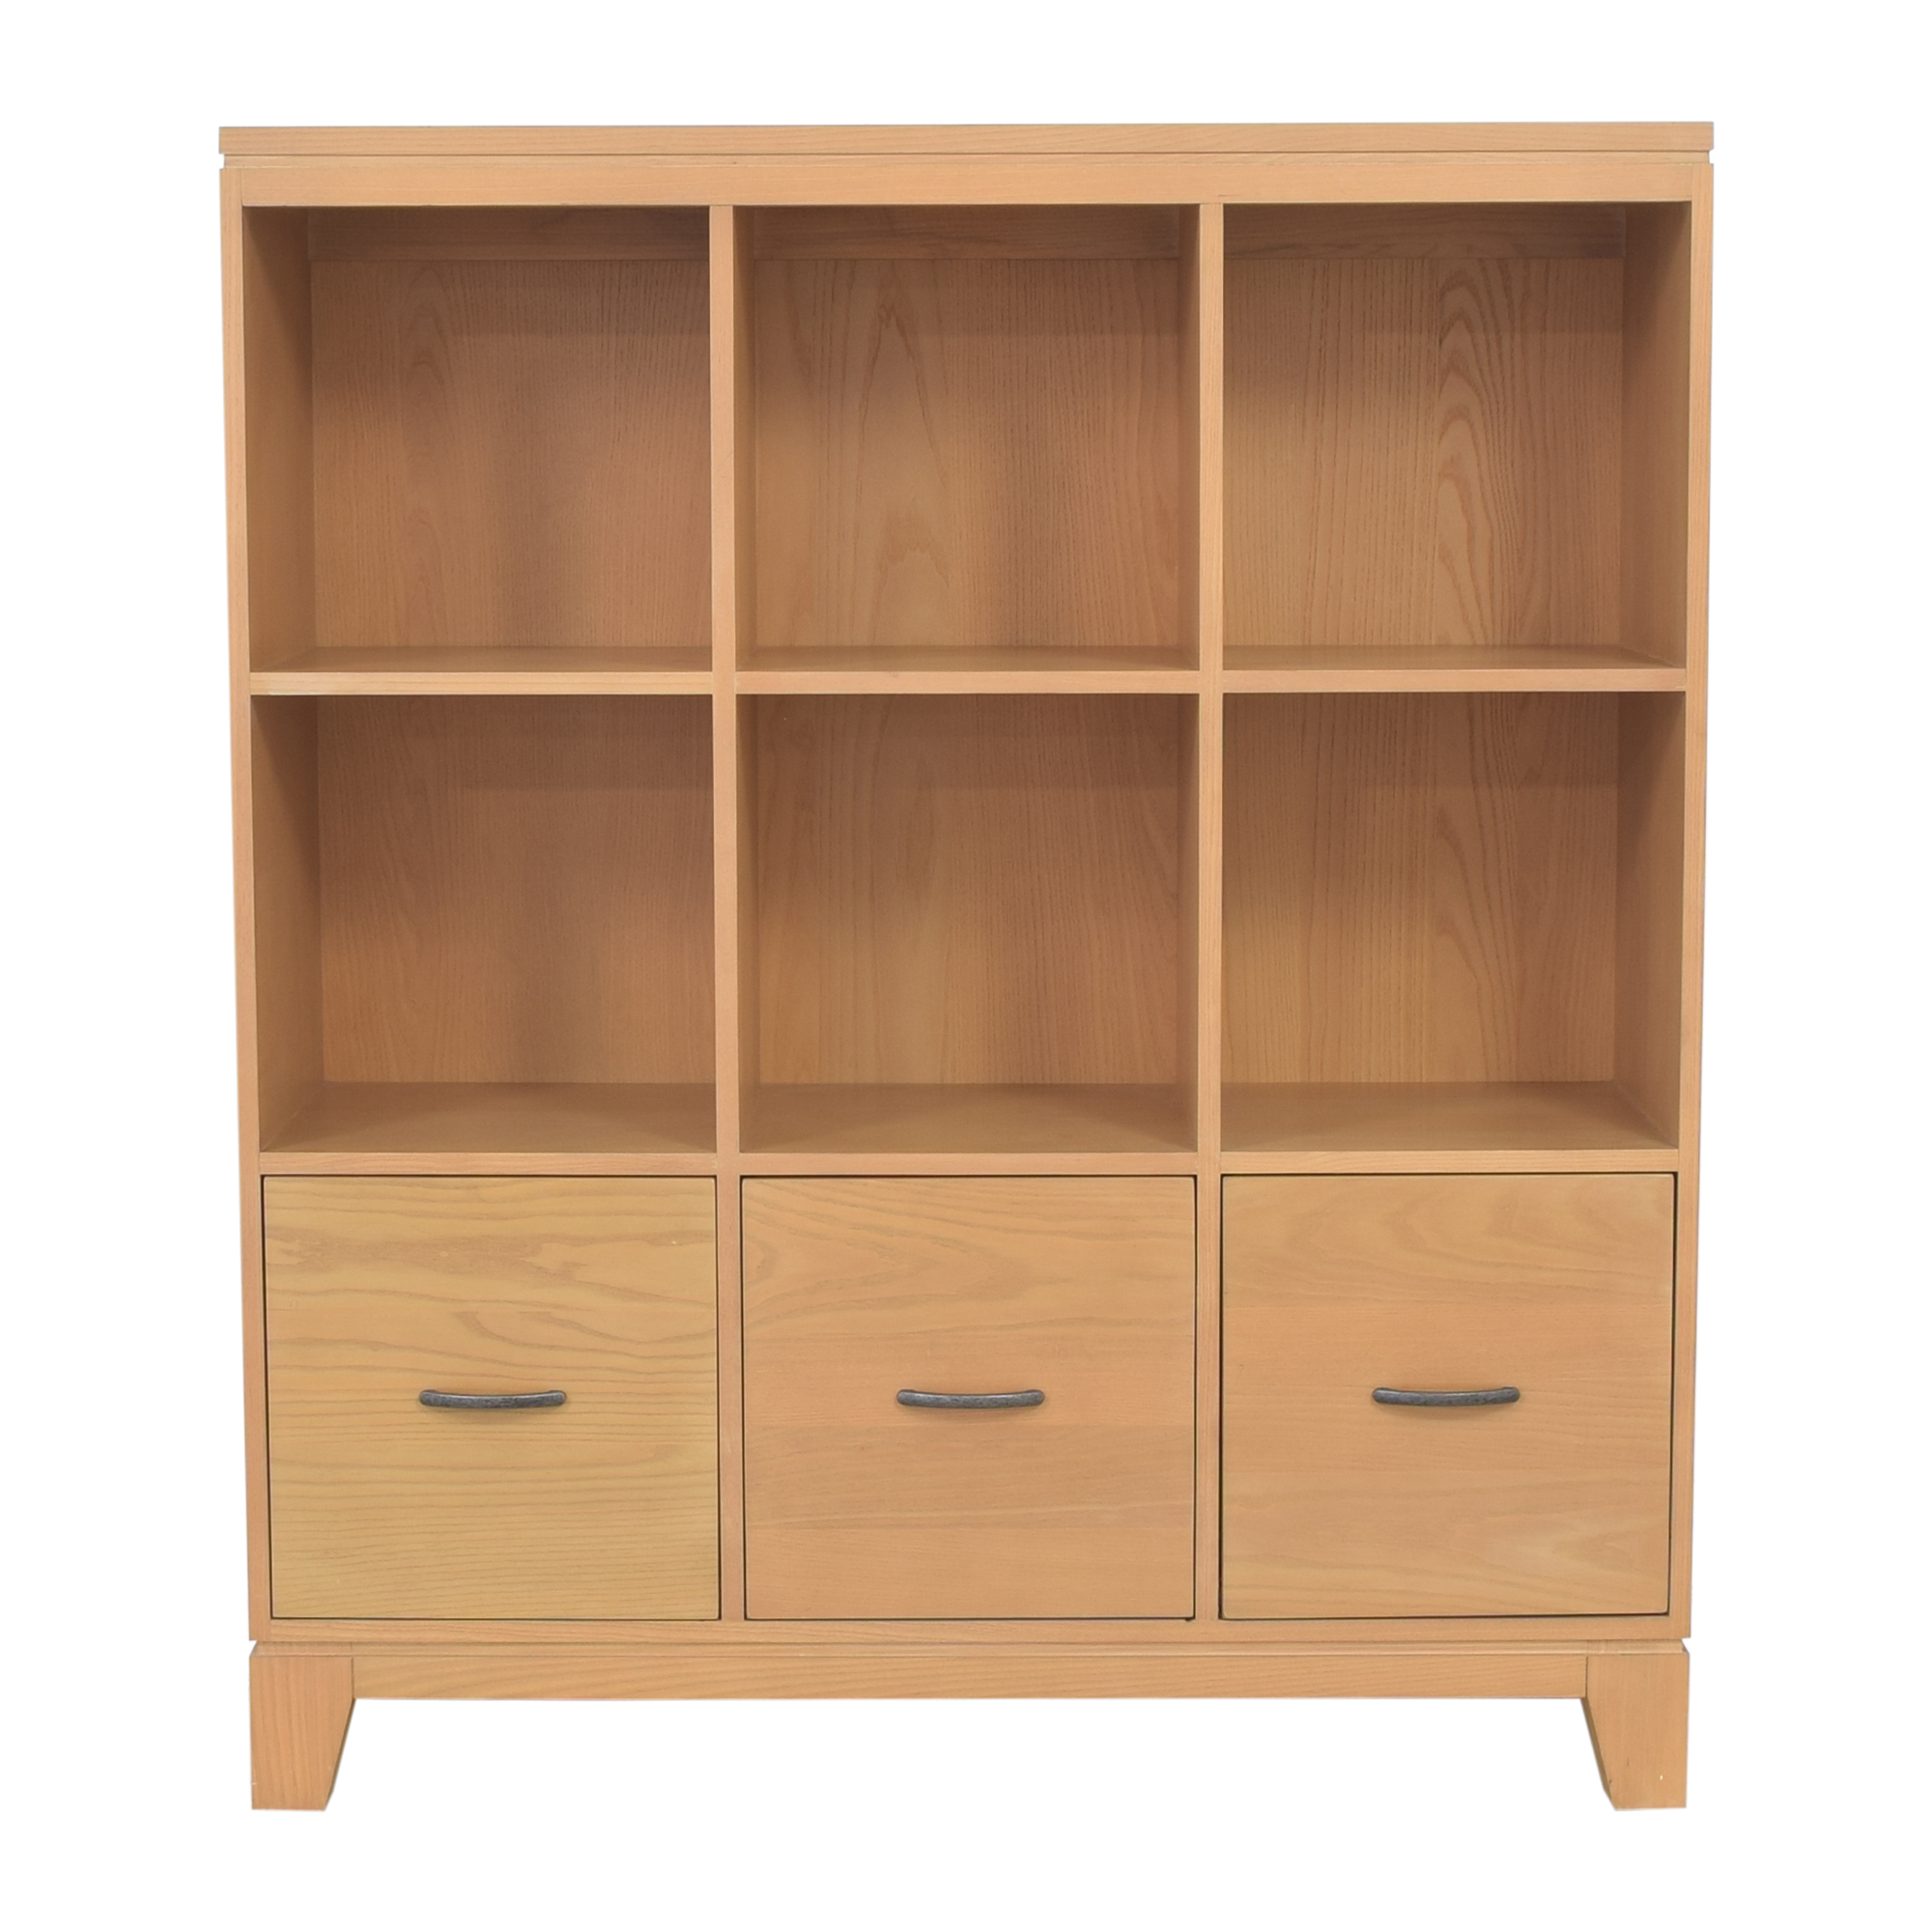 Ethan Allen Ethan Allen Bookcase with Filing Cabinets nyc